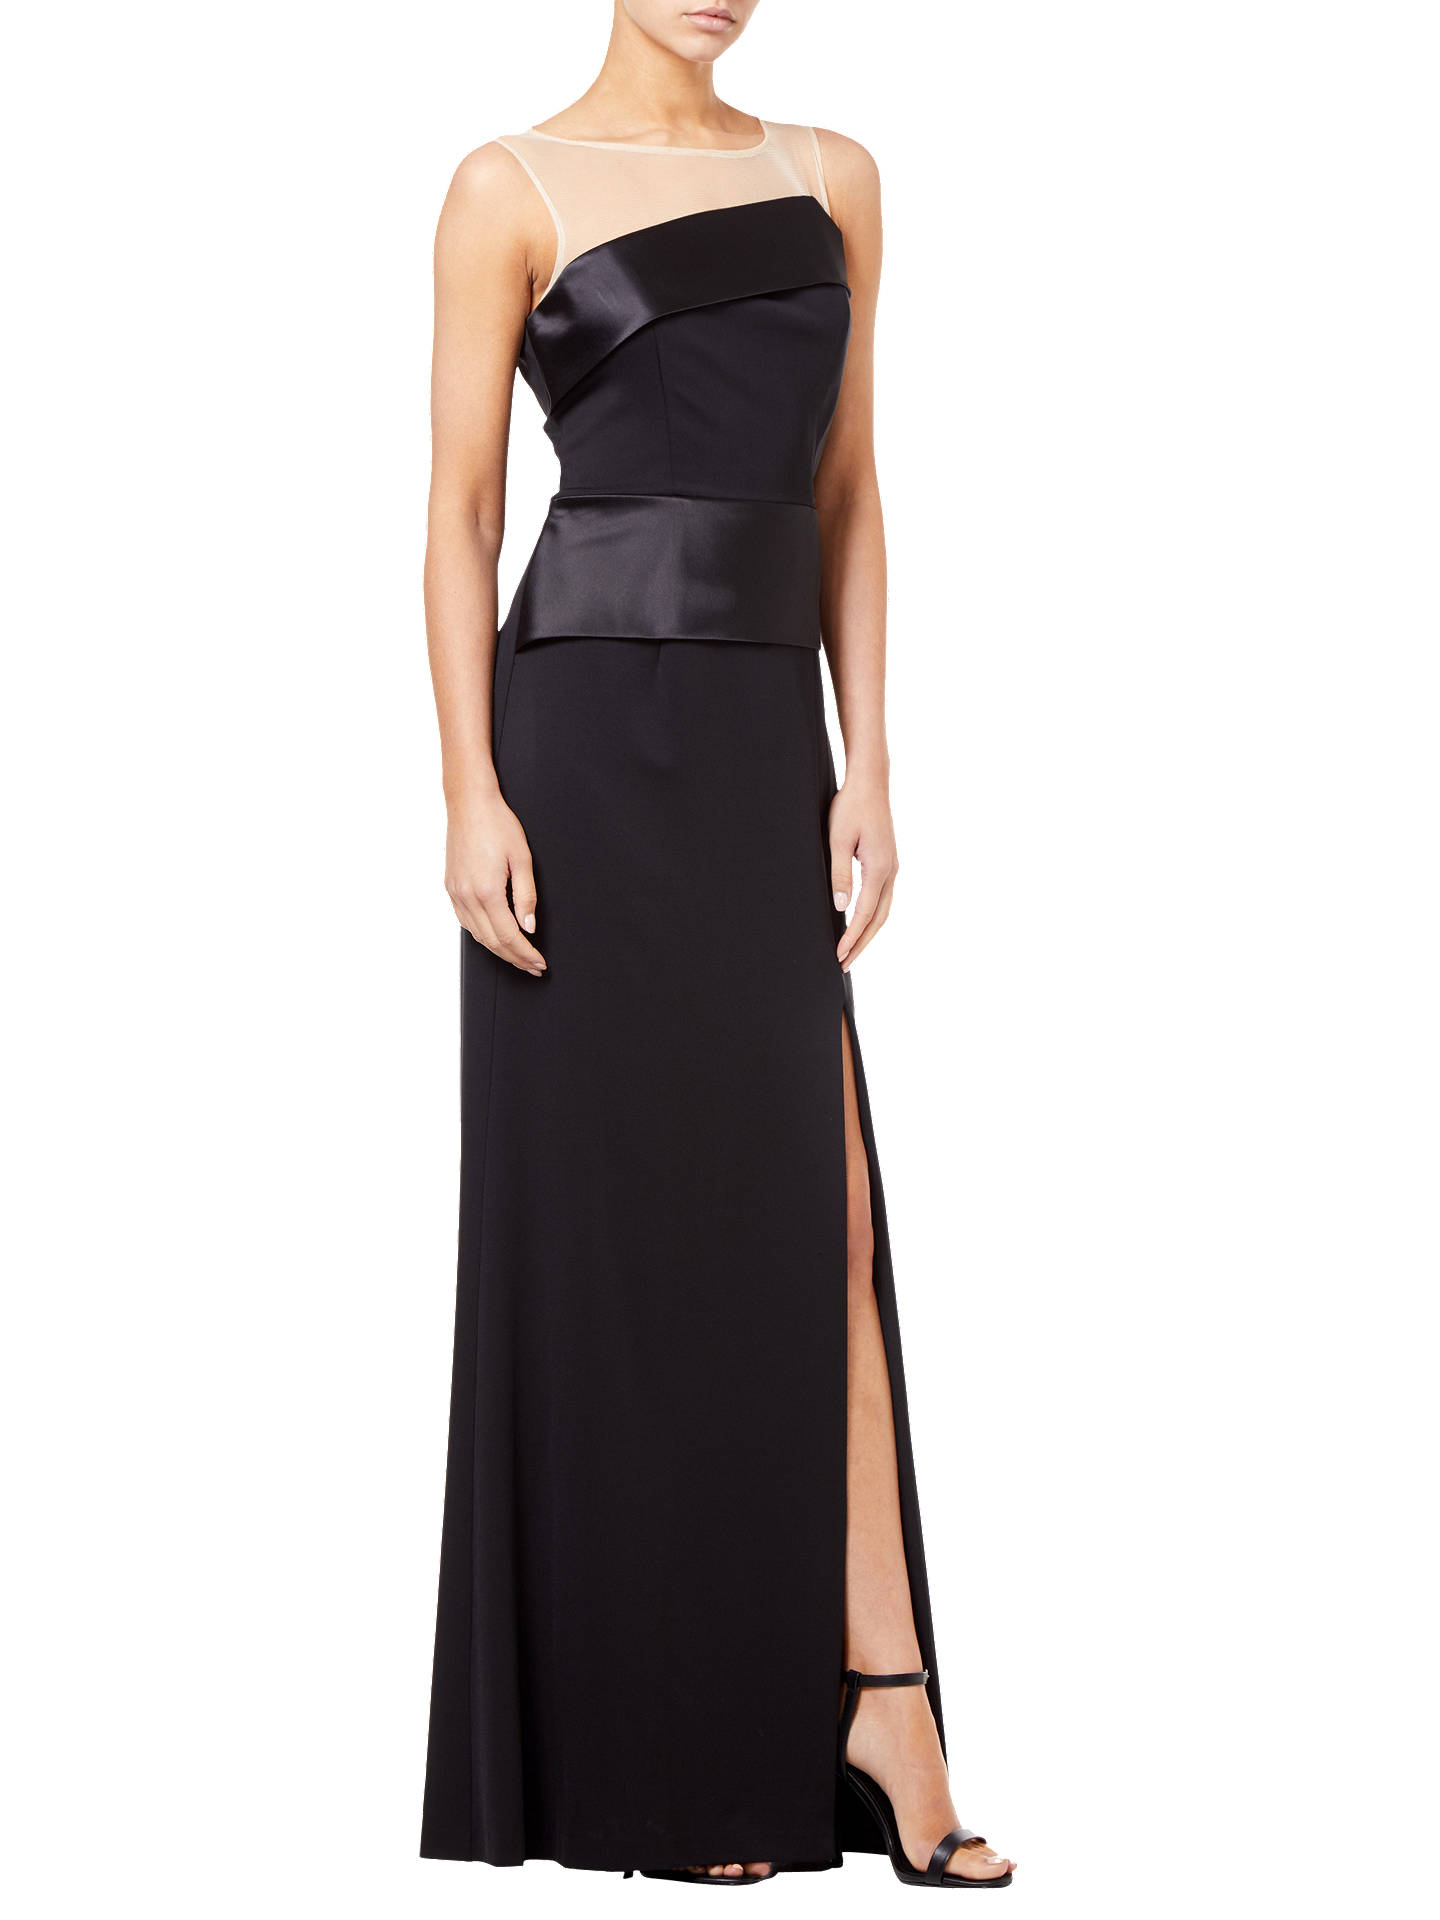 BuyAdrianna Papell Lola Long Dress, Black, 10 Online at johnlewis.com